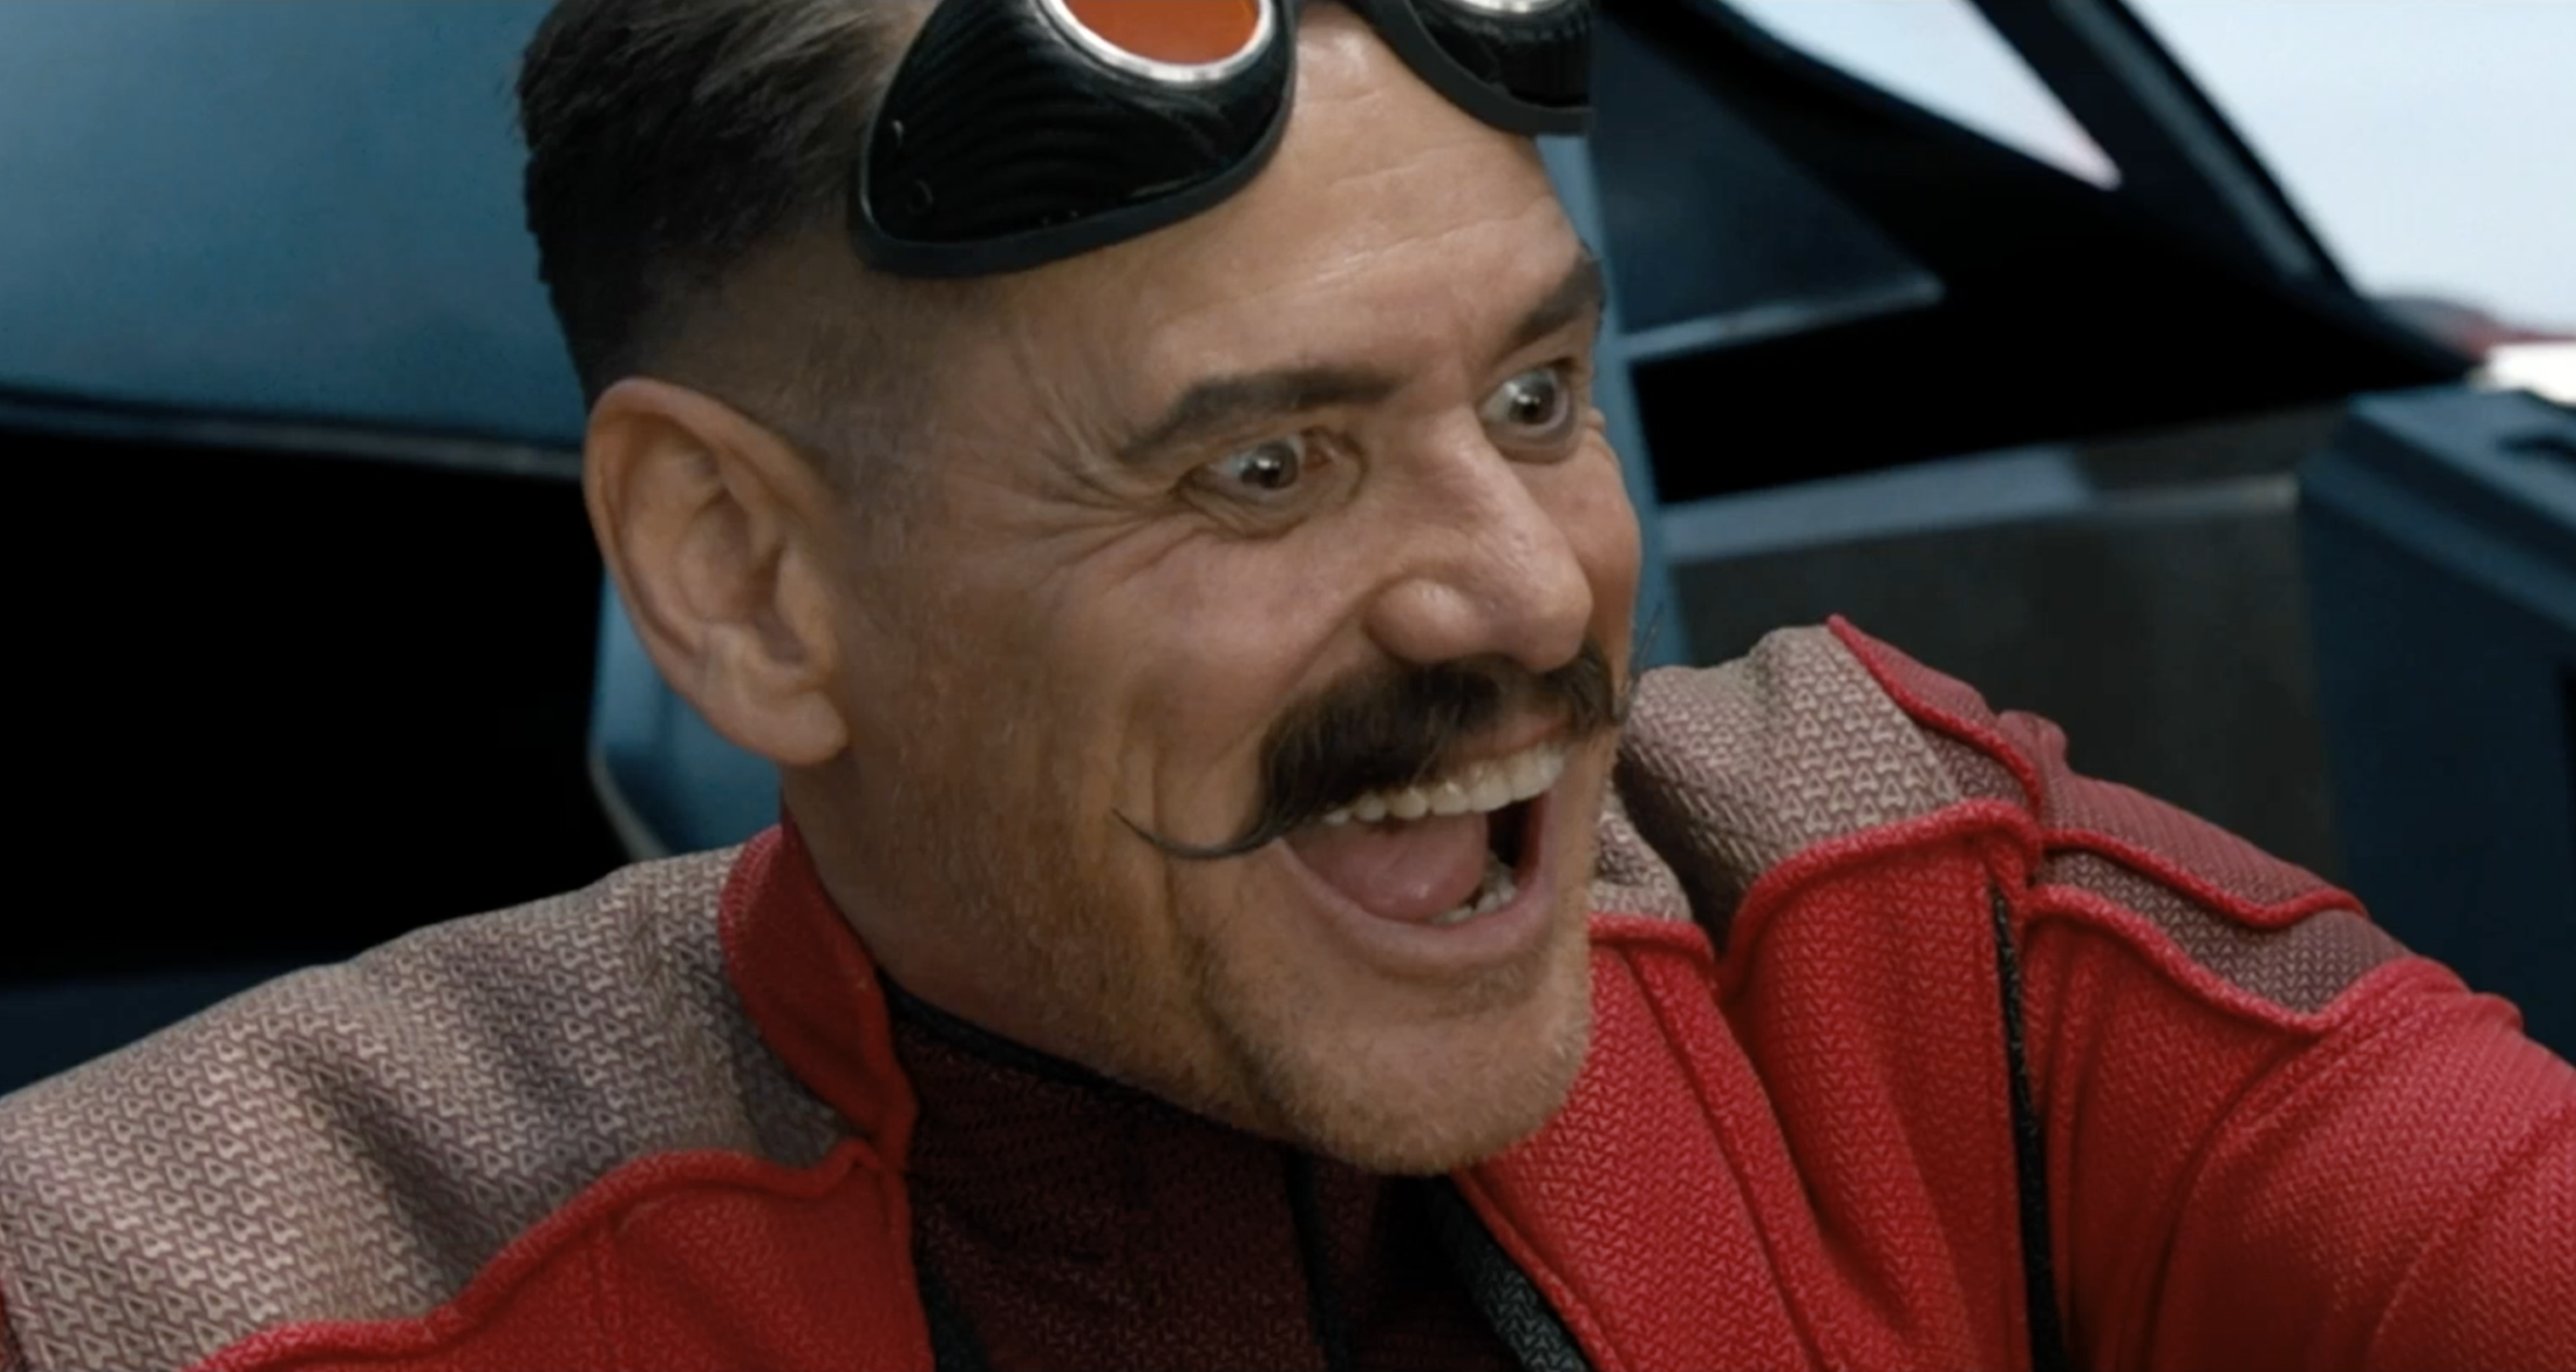 Video: Sonic the Hedgehog: Jim Carrey is jealous of Dr. Robotnik's 'ridiculous' moustache